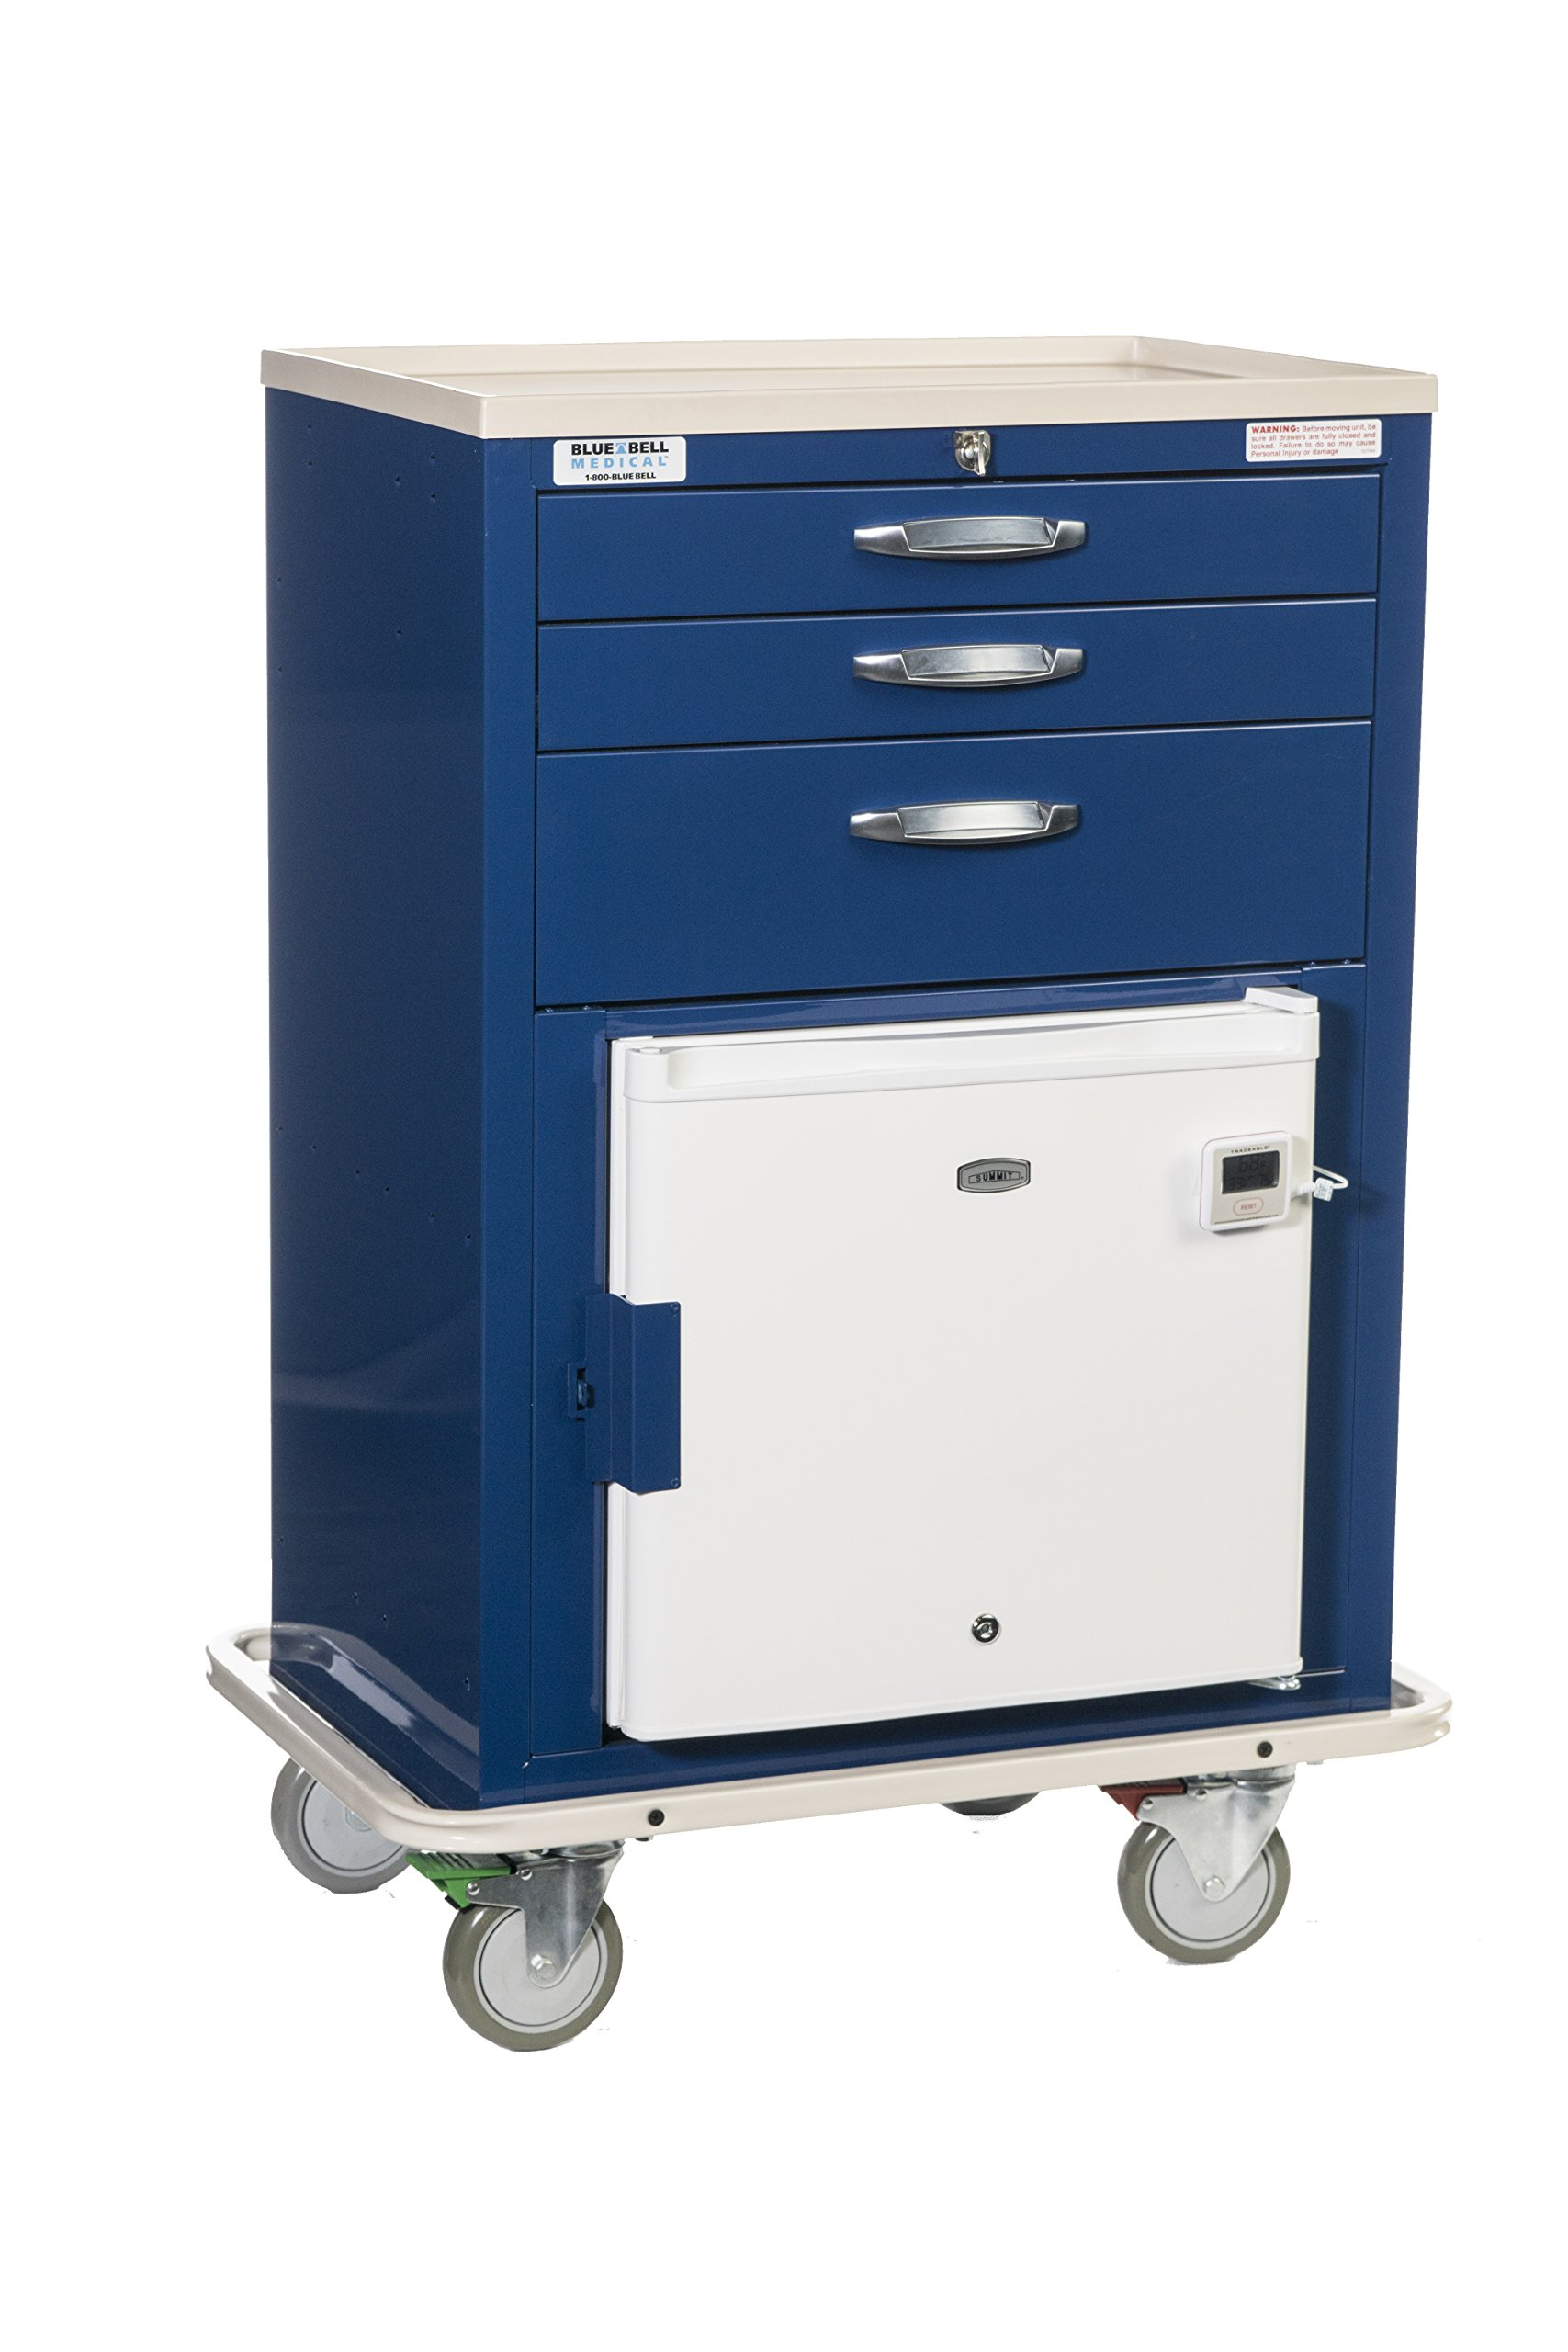 Blue Bell Medical 89022 BHC-2, Basic MH Cart, Breakaway Lock ,Professional Emergency Medical Crash Supply Cart For Anesthesia Treatment And Medical Equipment Storage